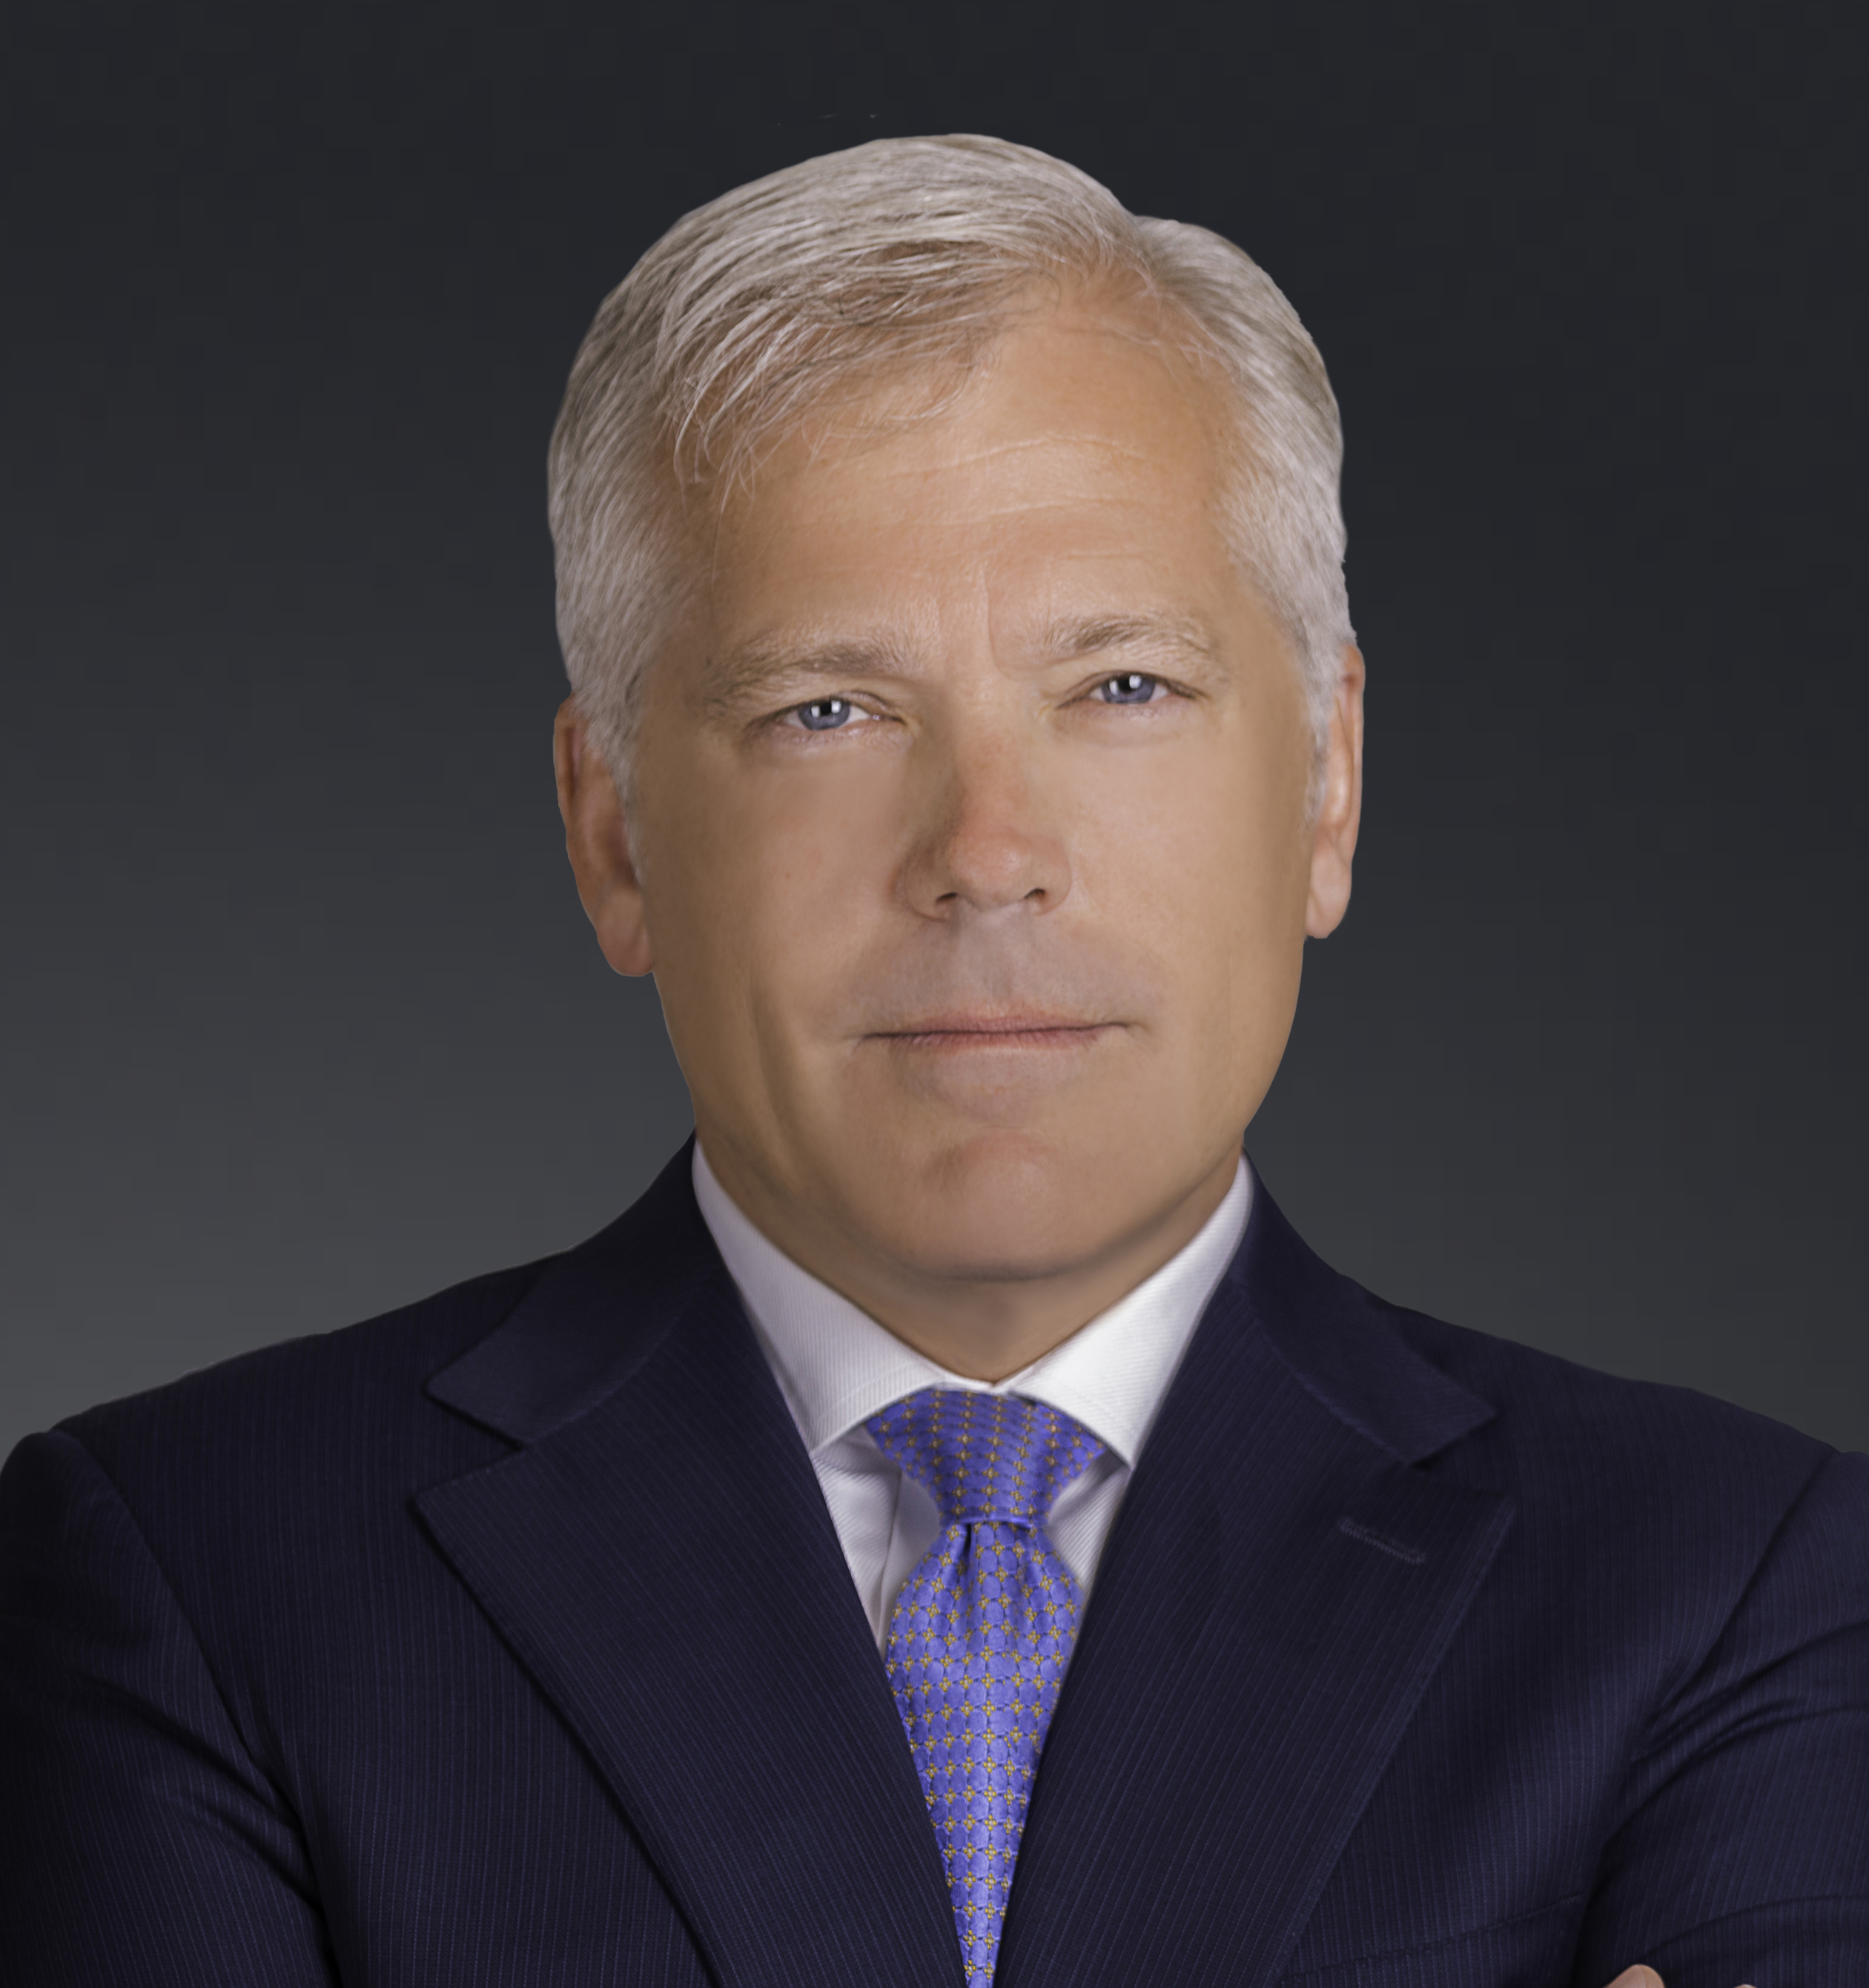 Christopher McDonald - Chief Executive Officer